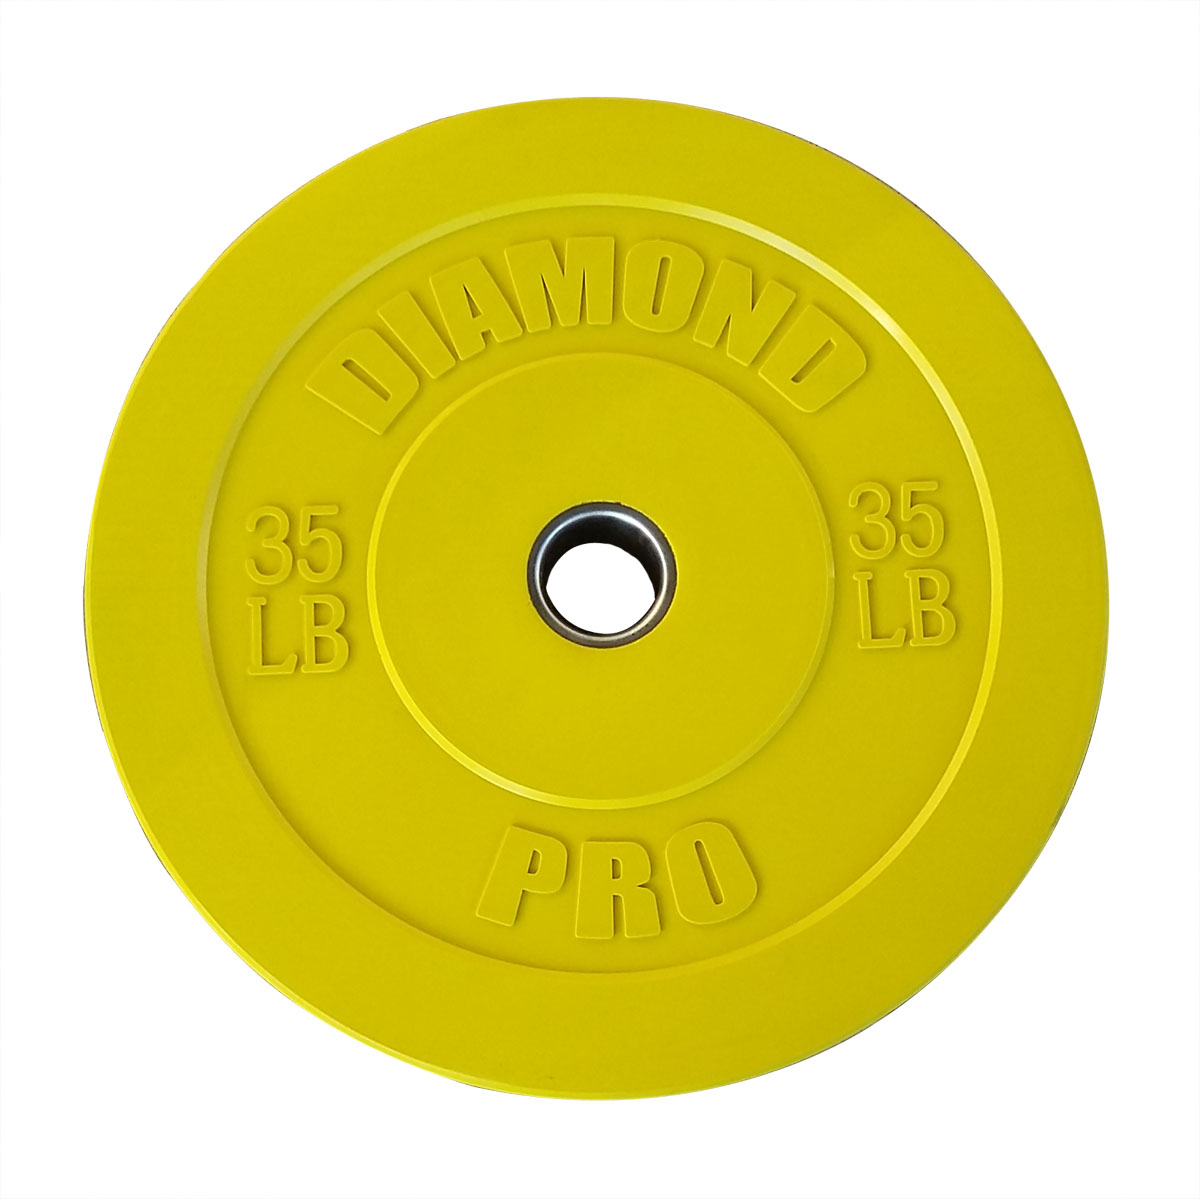 Diamond Pro 35 lb Color Bumper Plate Single